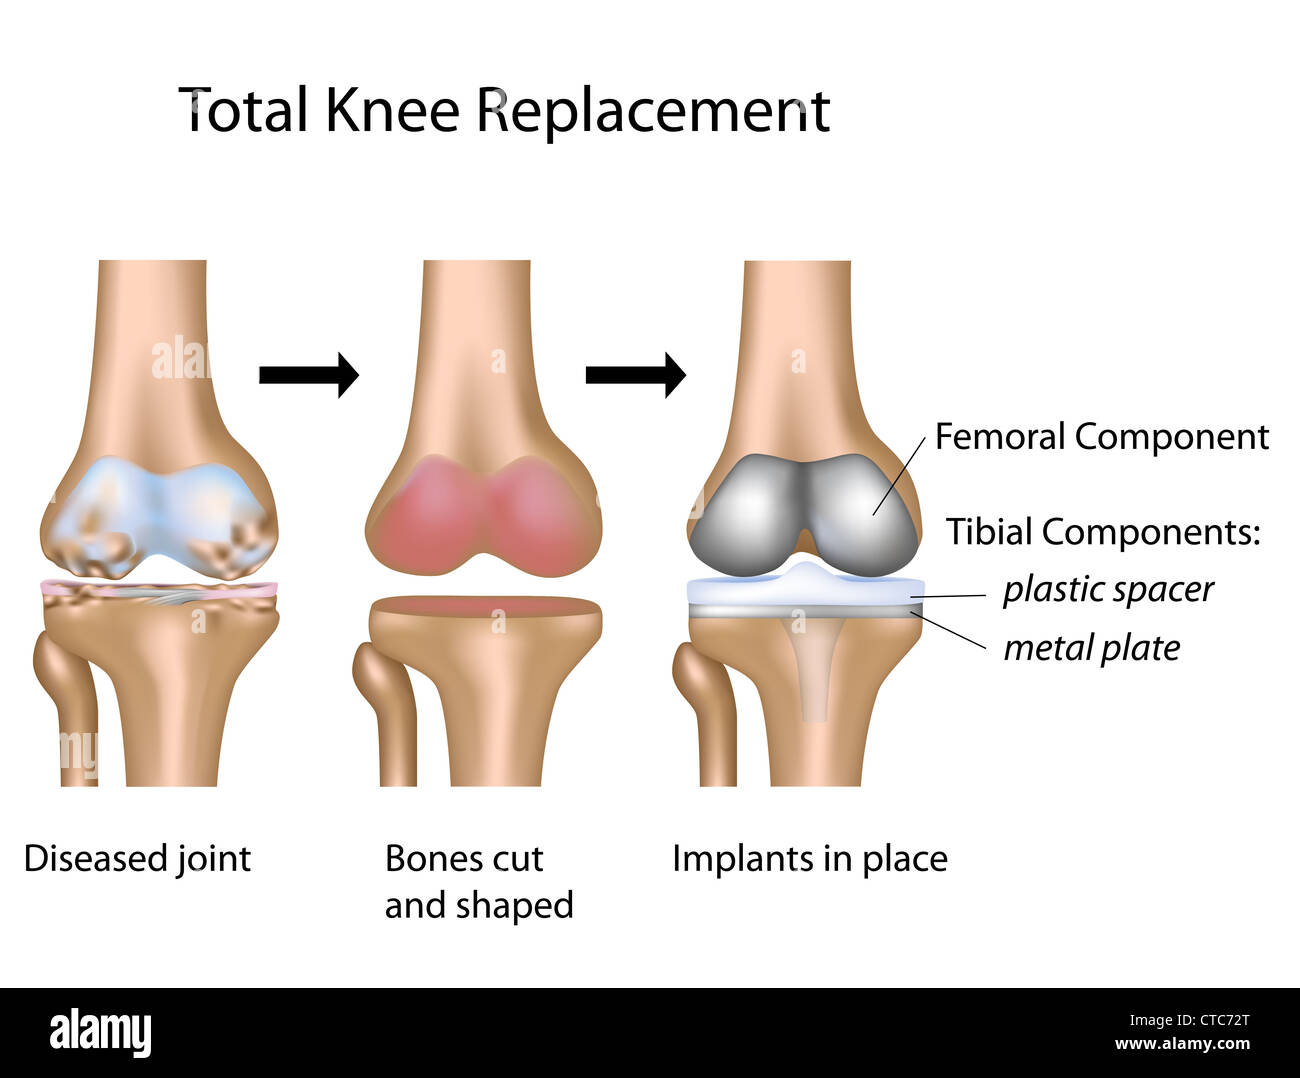 Total knee replacement surgery - Stock Image